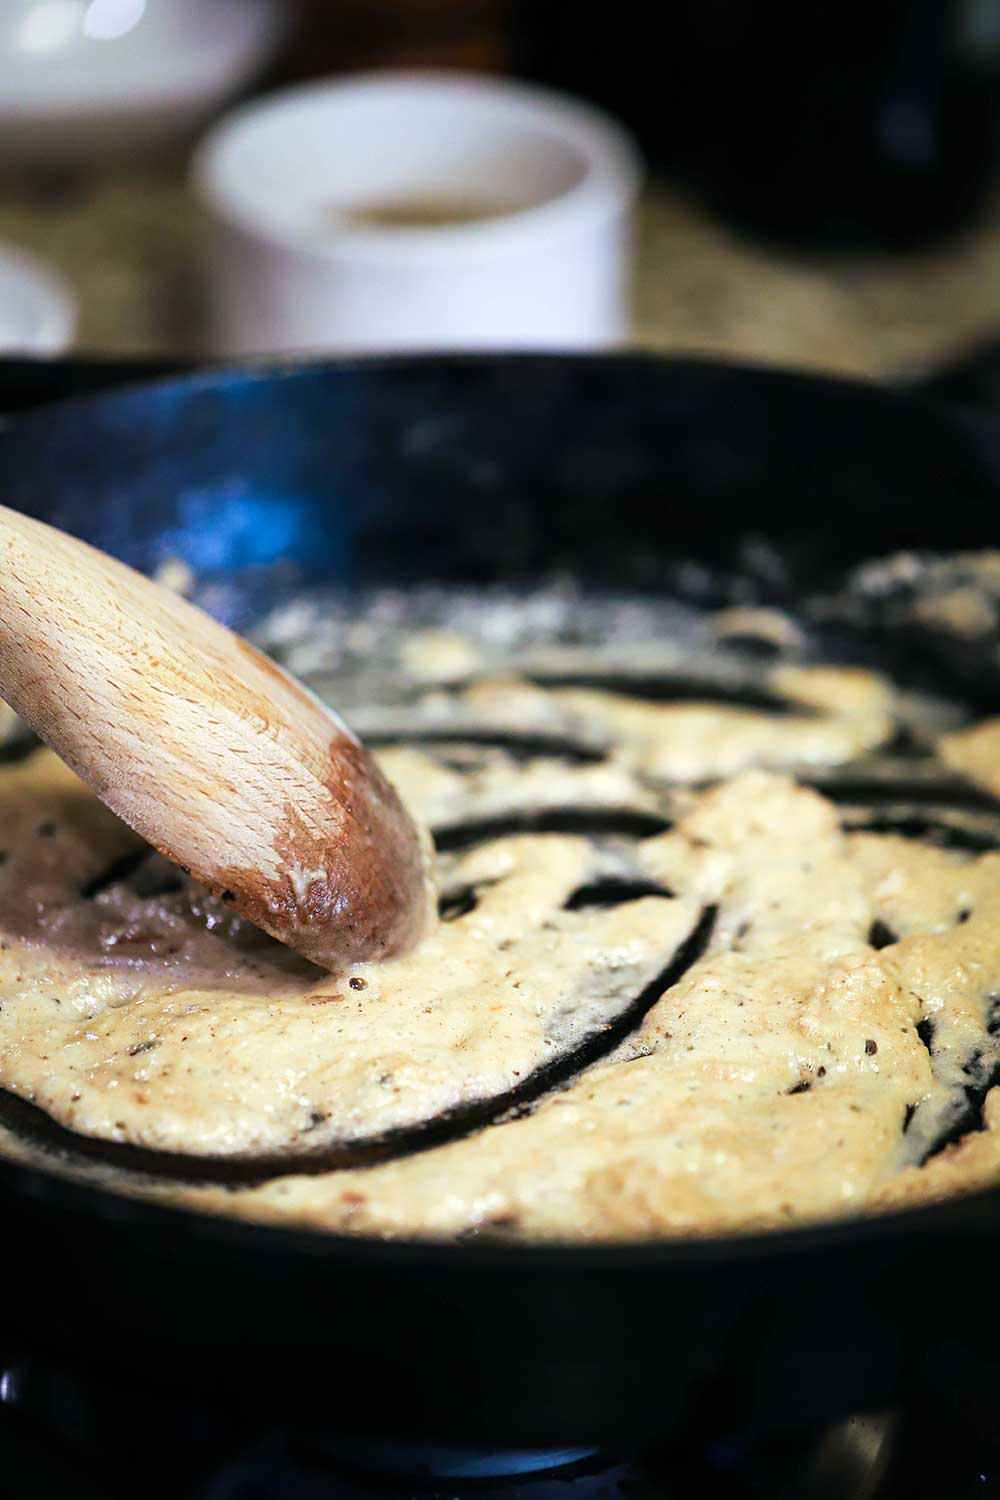 A wooden spoon stirring a blonde roux in a large black cast-iron skillet.